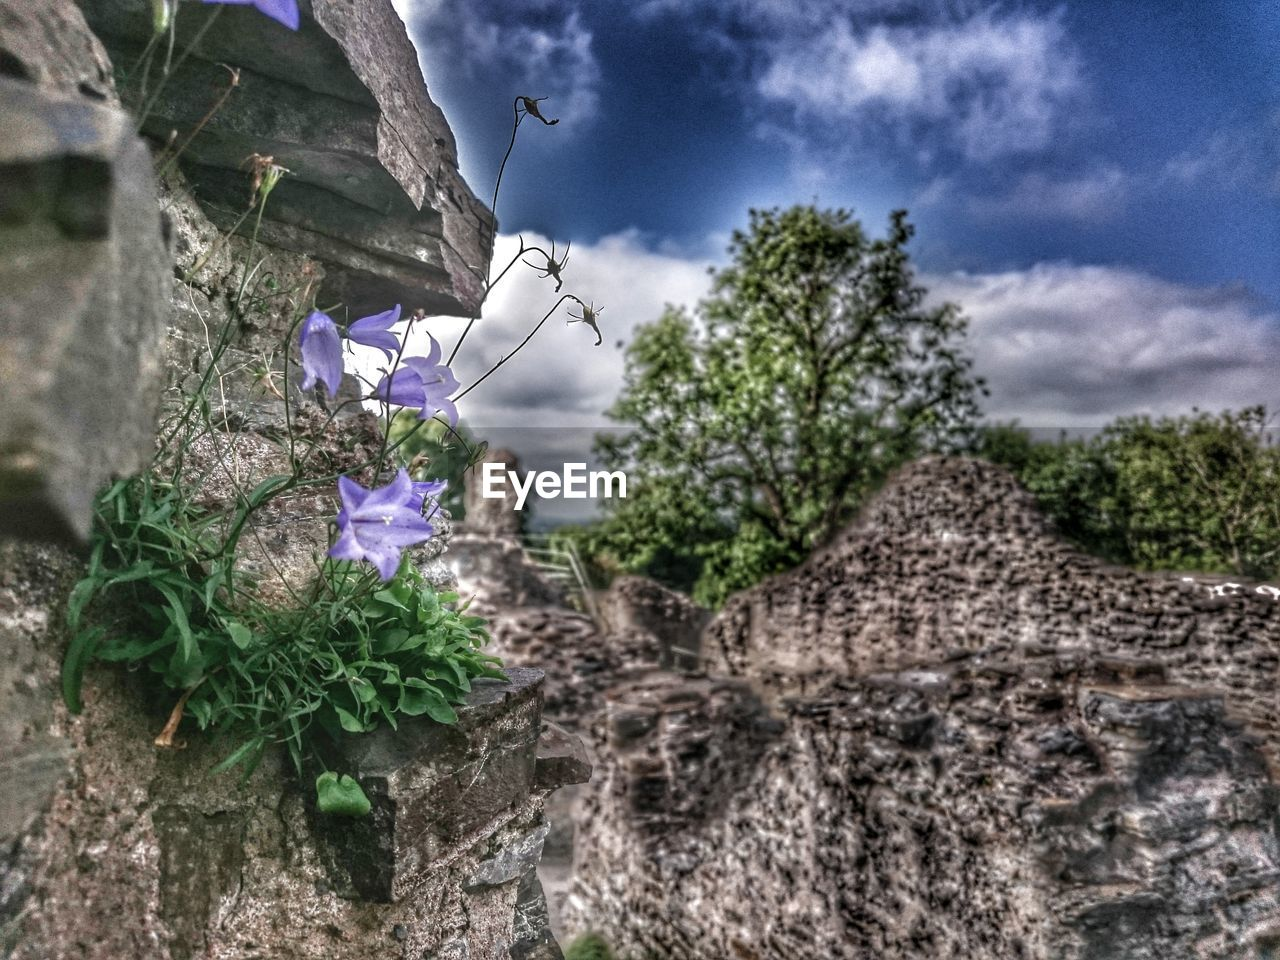 growth, flower, nature, plant, beauty in nature, outdoors, fragility, no people, day, tree, sky, cloud - sky, blooming, low angle view, freshness, close-up, flower head